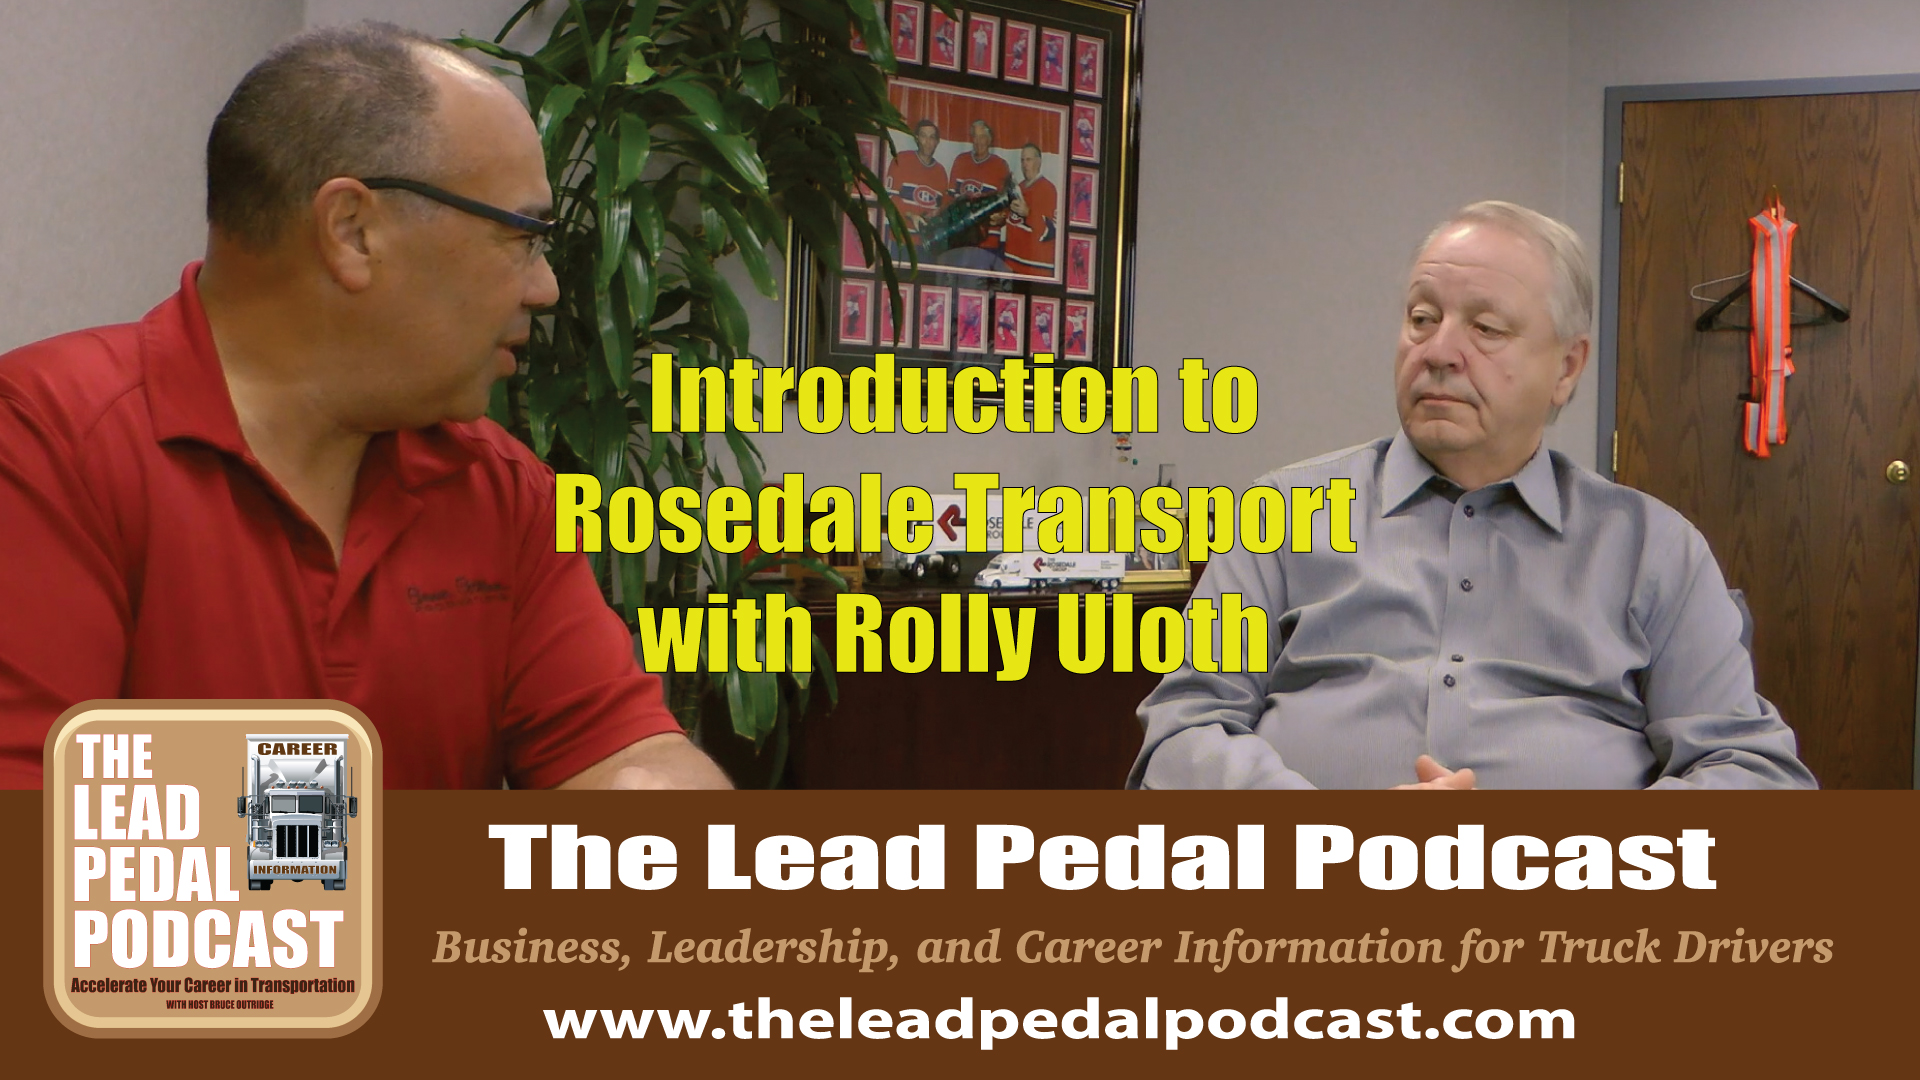 Rosdael Transport's Rolly Uloth